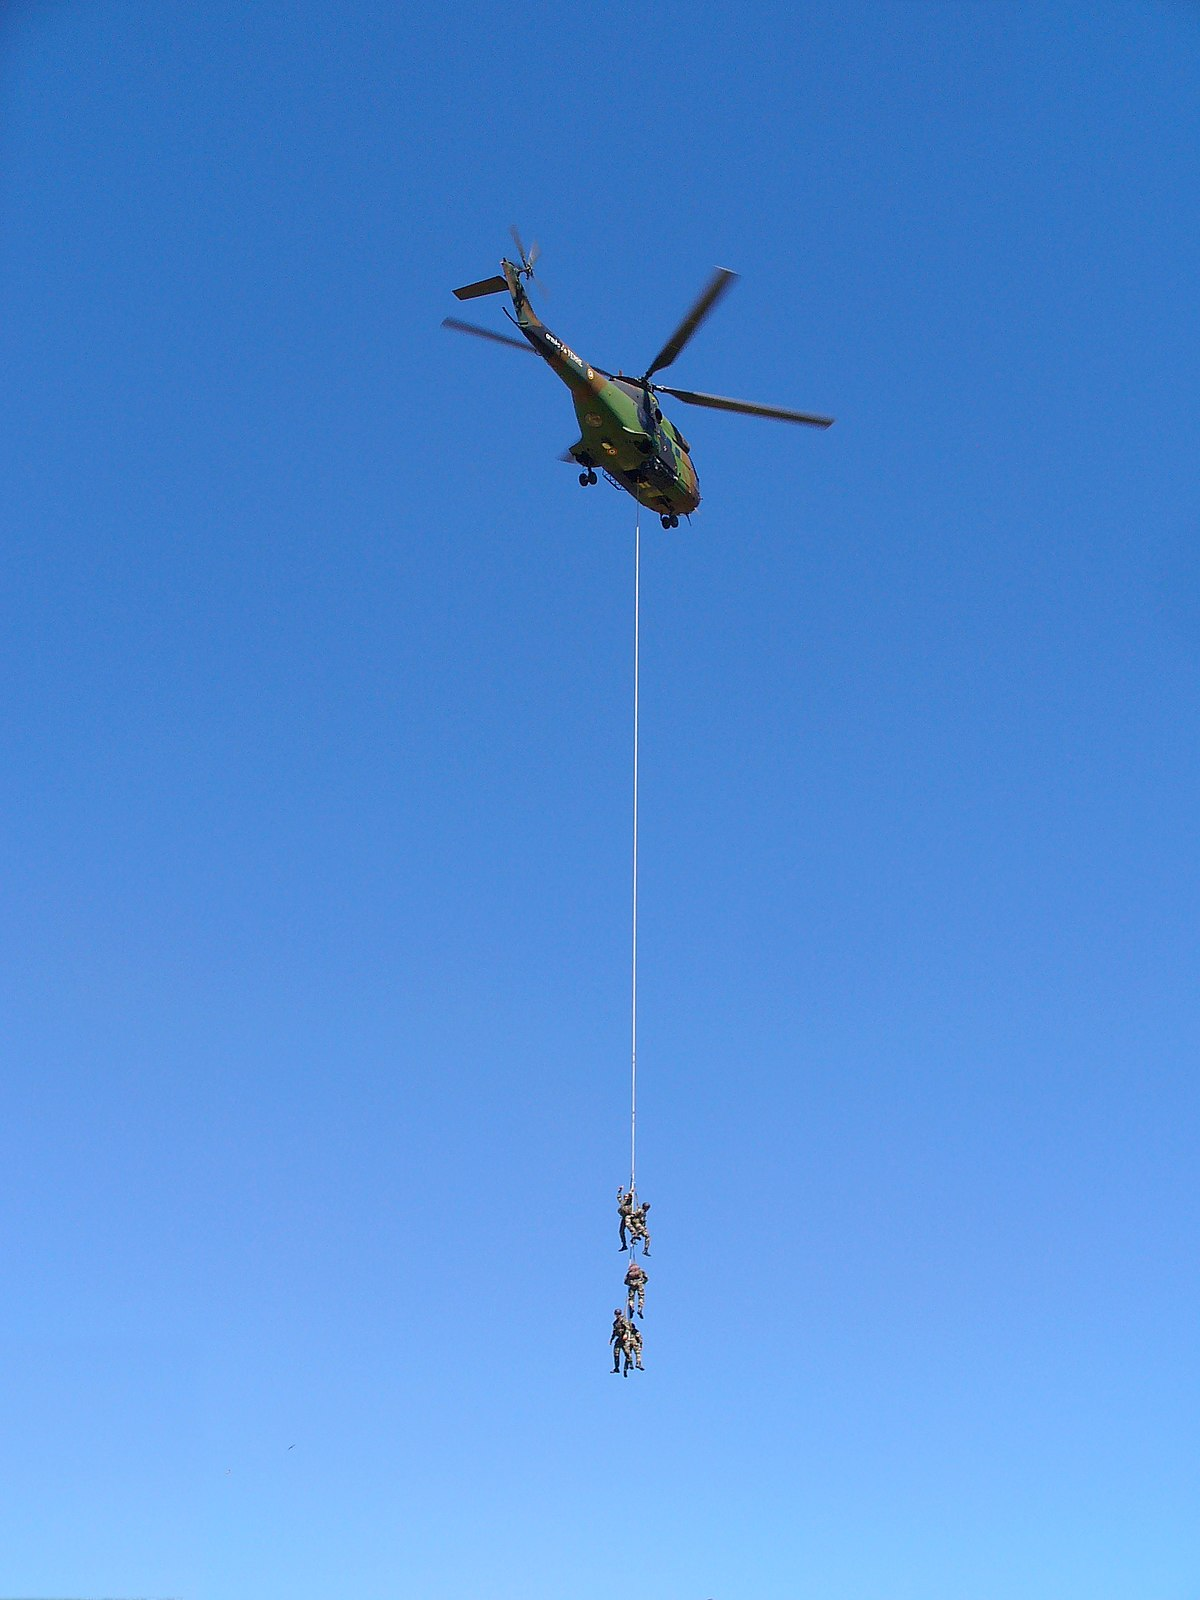 Helicopter Rope Suspension Technique  Wikipedia